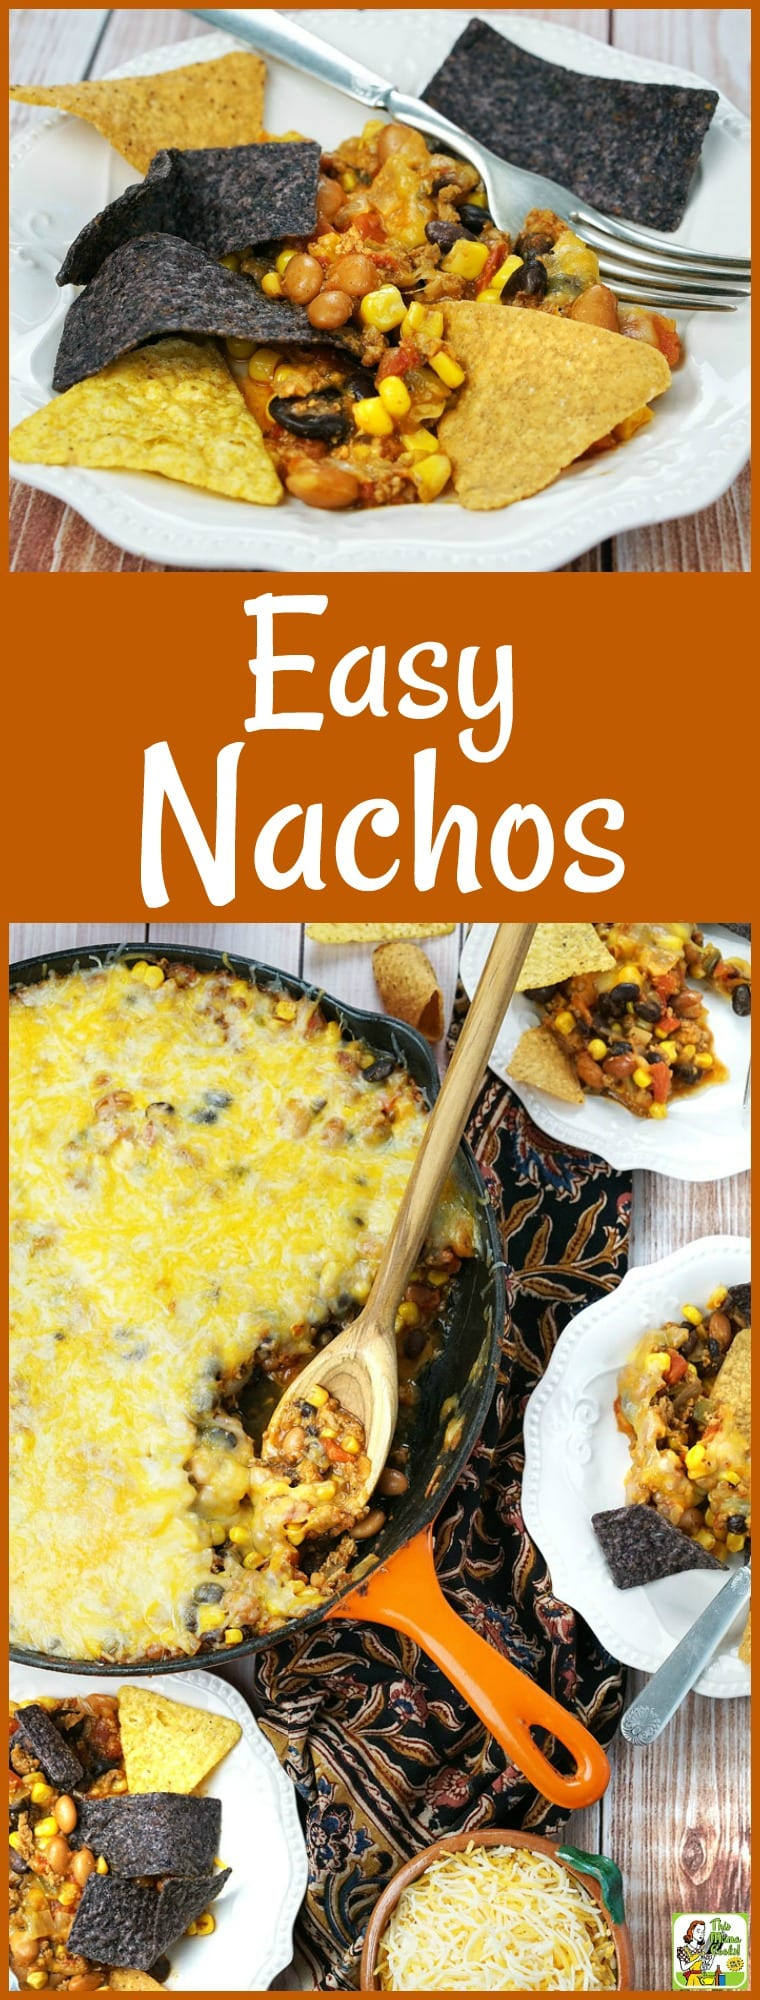 Looking for an Easy Nachos Recipe to make for a party? Try this nachos dip recipe that can be made in less than 20 minutes and served in a skillet! It's packed with healthy beans and lean ground turkey, so it's guilt-free dinner dish your family will love. #nachos #dip #party #appetizer #partyfood #cheese #glutenfree #turkey #beans